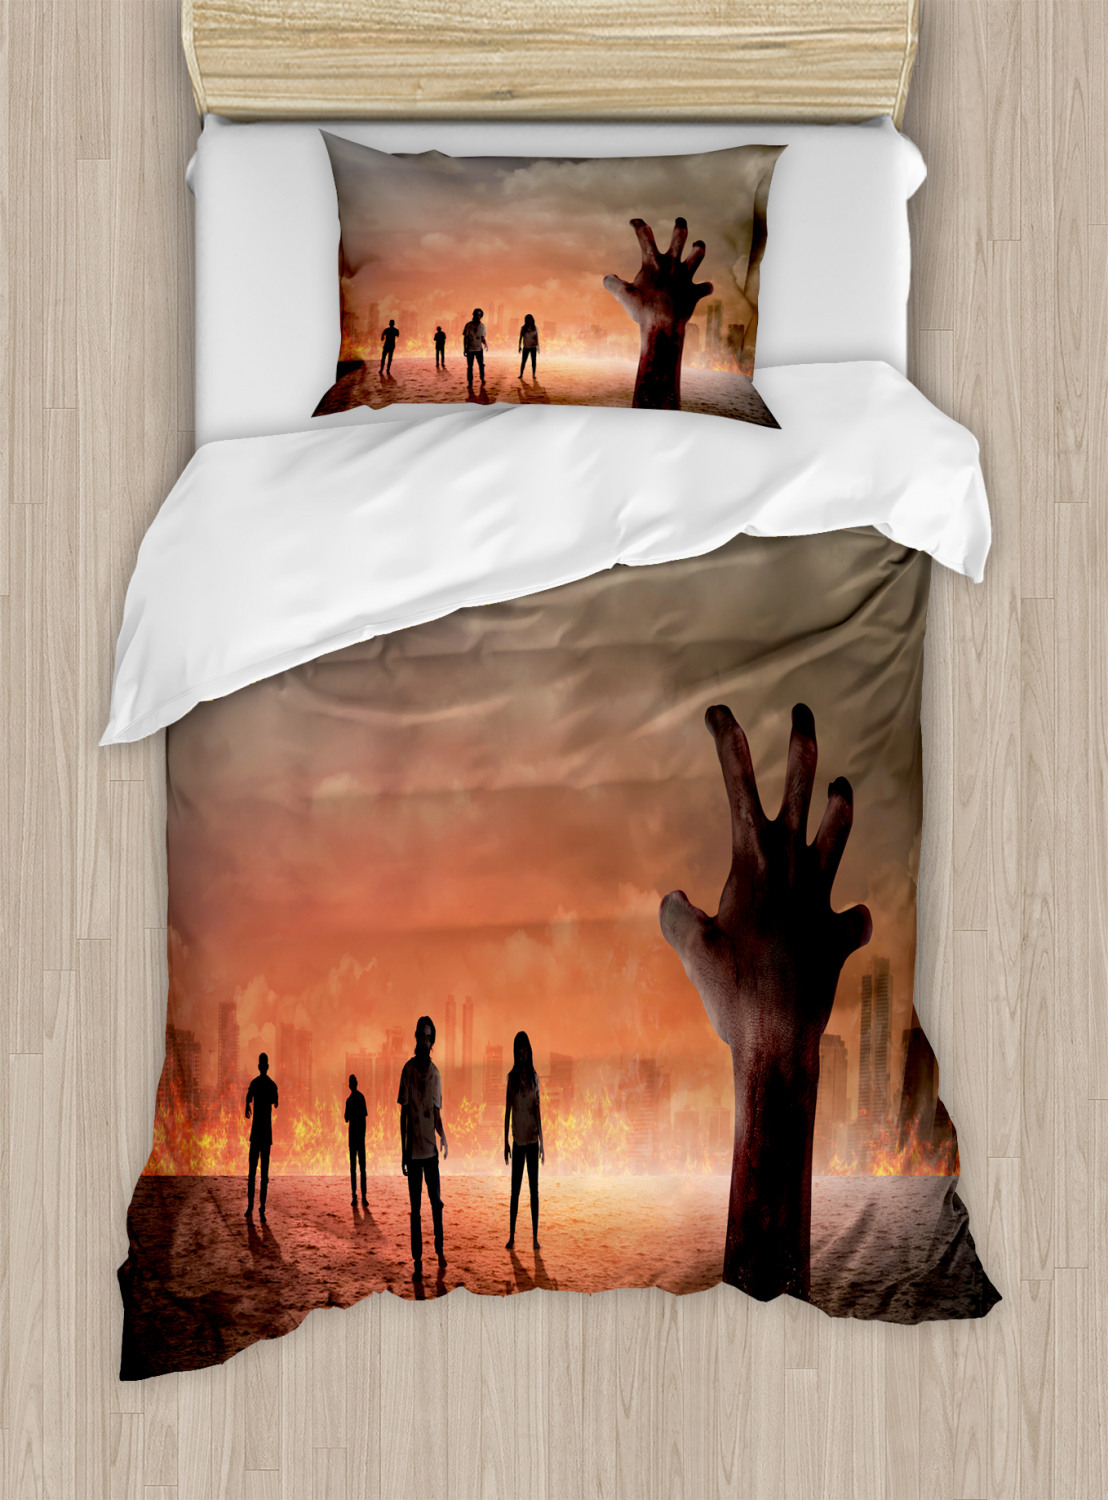 Zombie Duvet Cover Set with Pillow Shams Death Burning ...